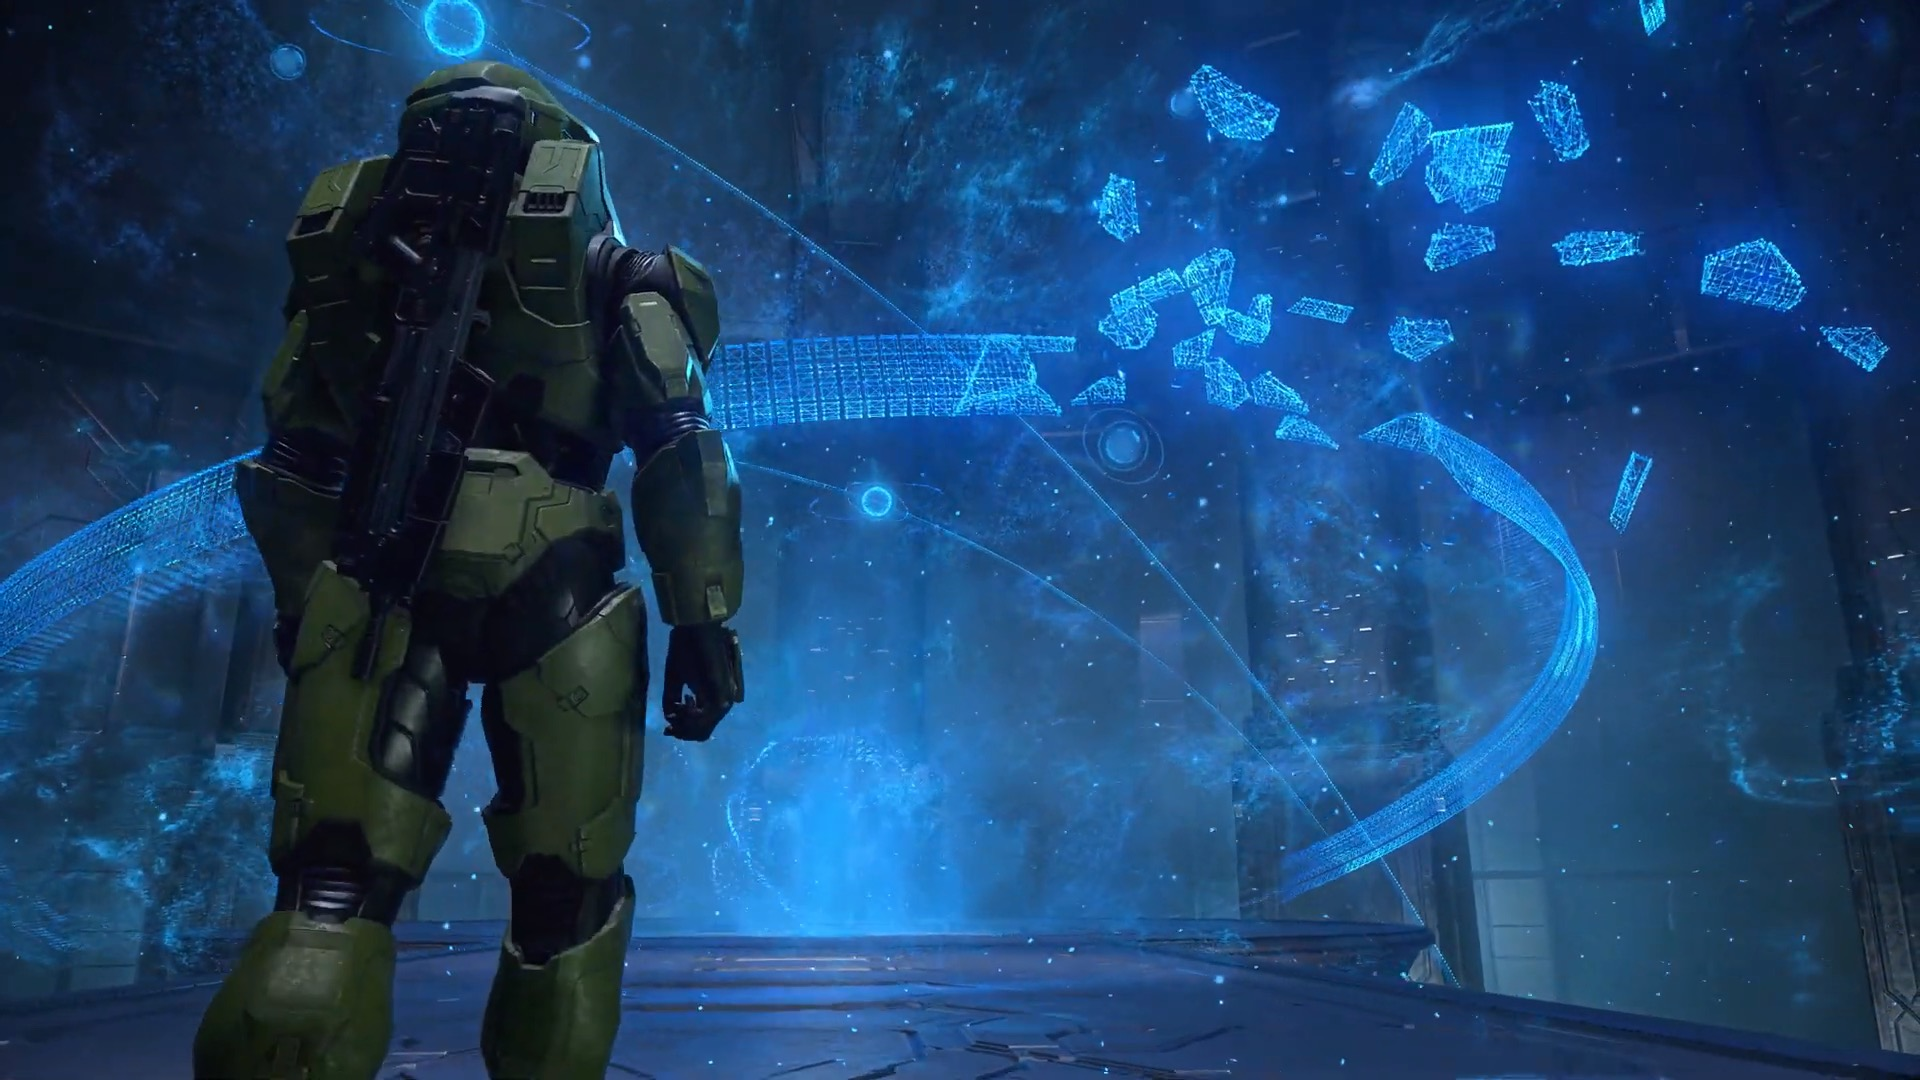 Halo Infinite Watch Master Chief In The E3 2019 Trailer